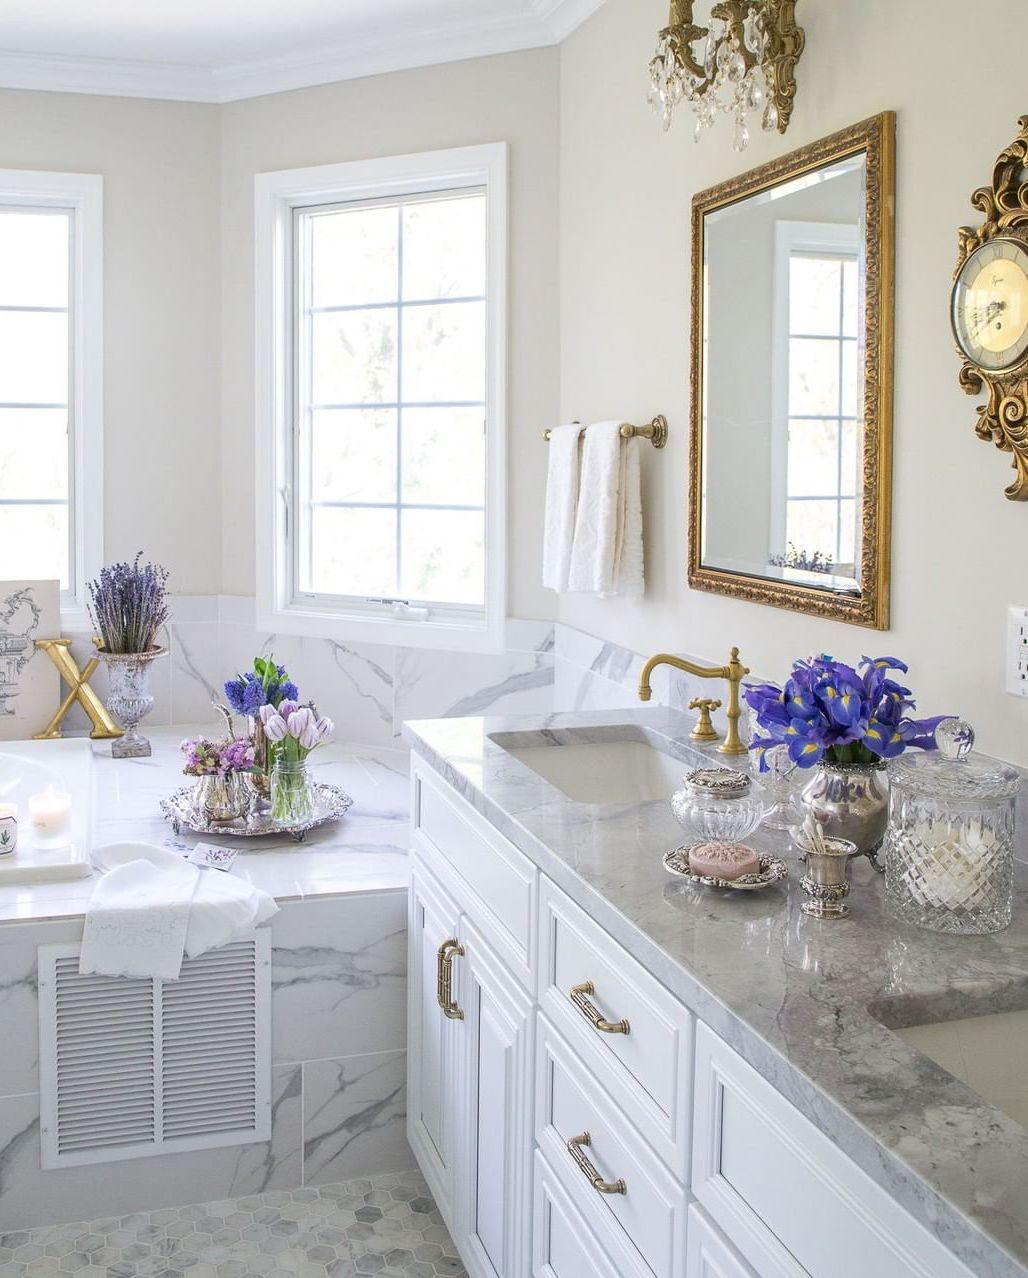 23 French Country Bathroom Decor Ideas, French Country Bathroom Accessories